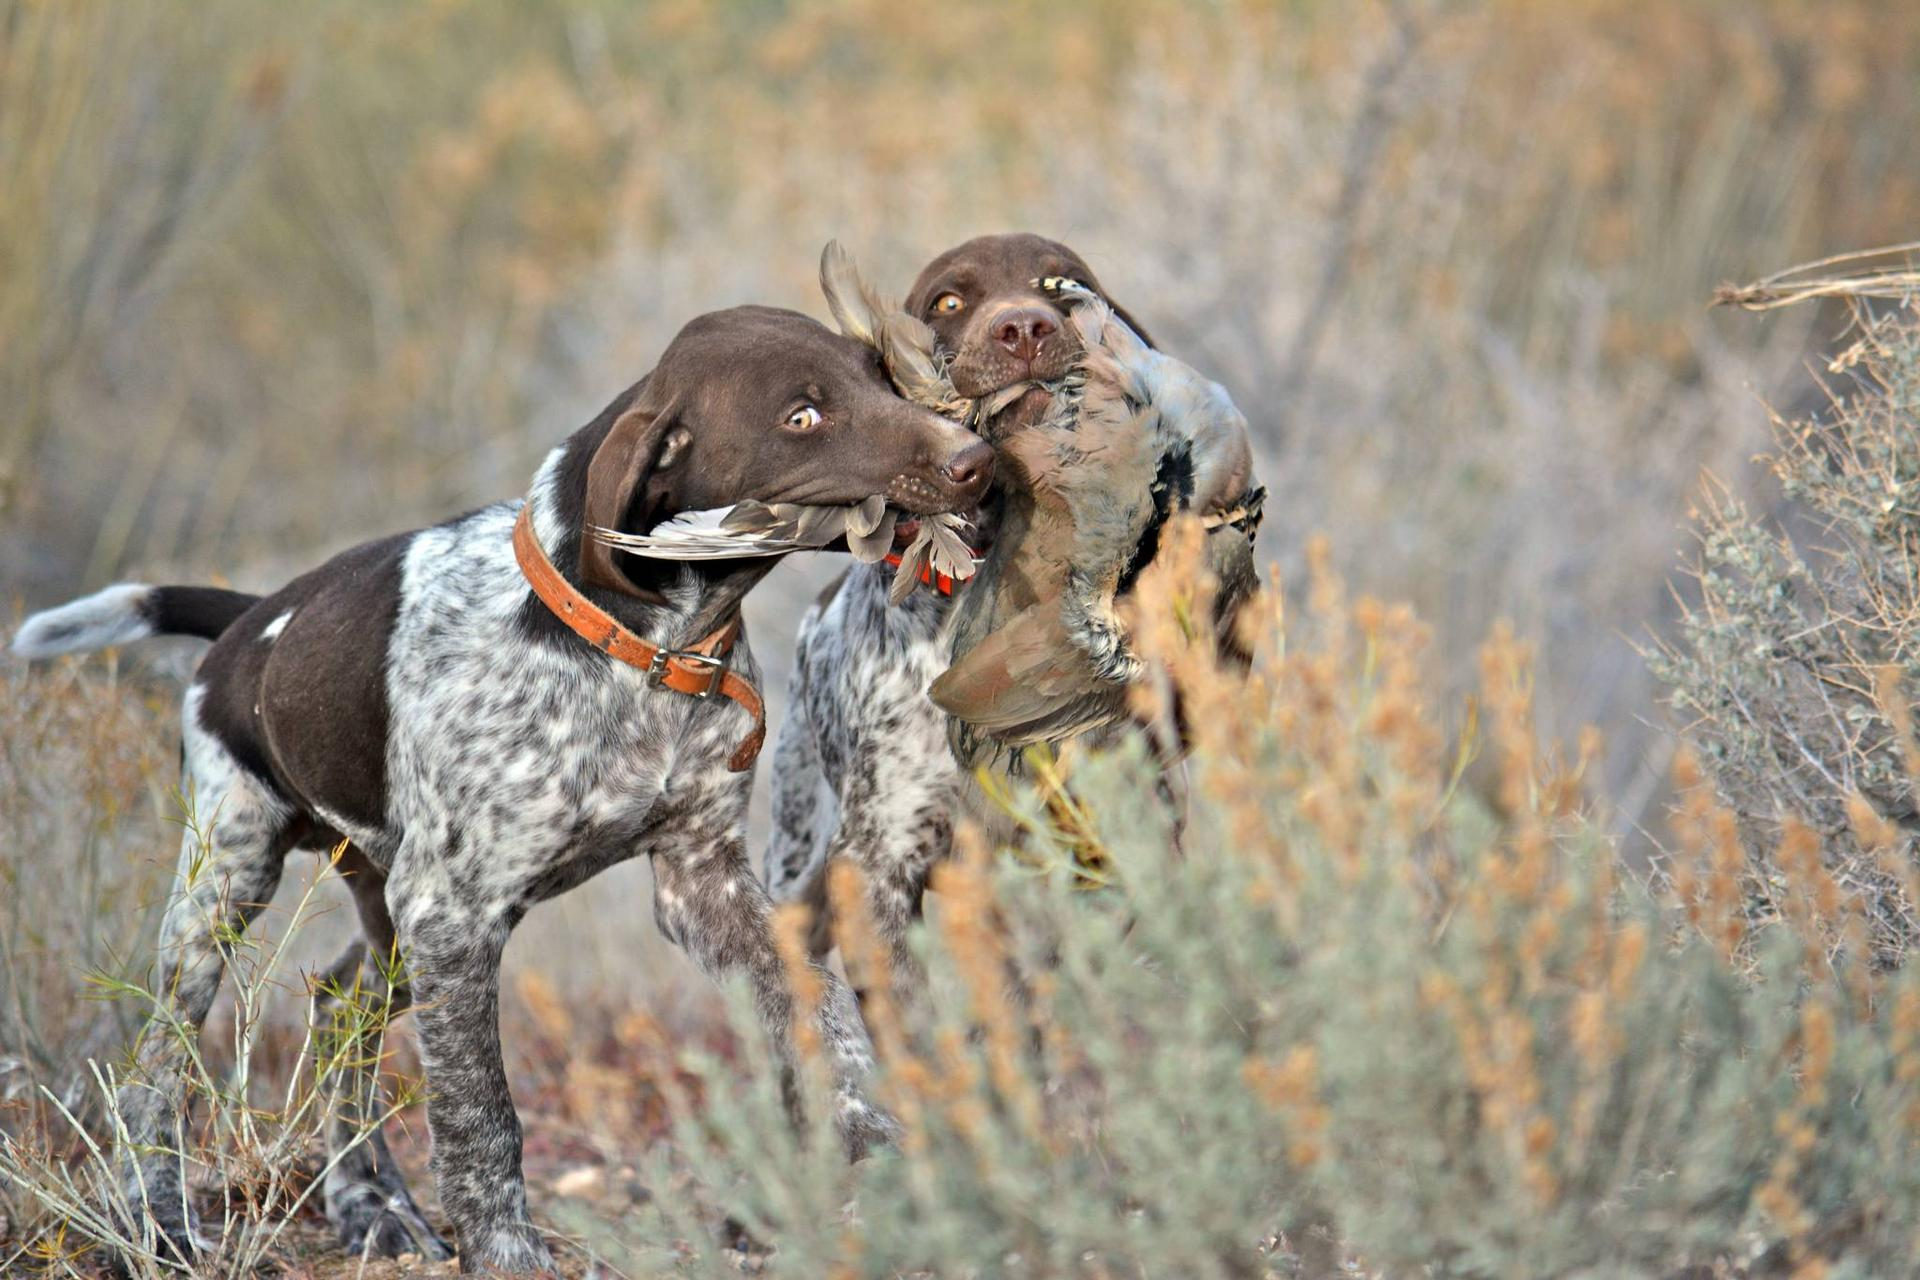 clint_wirick_12-15-2015_hunting_dogs_with_chukars.jpeg